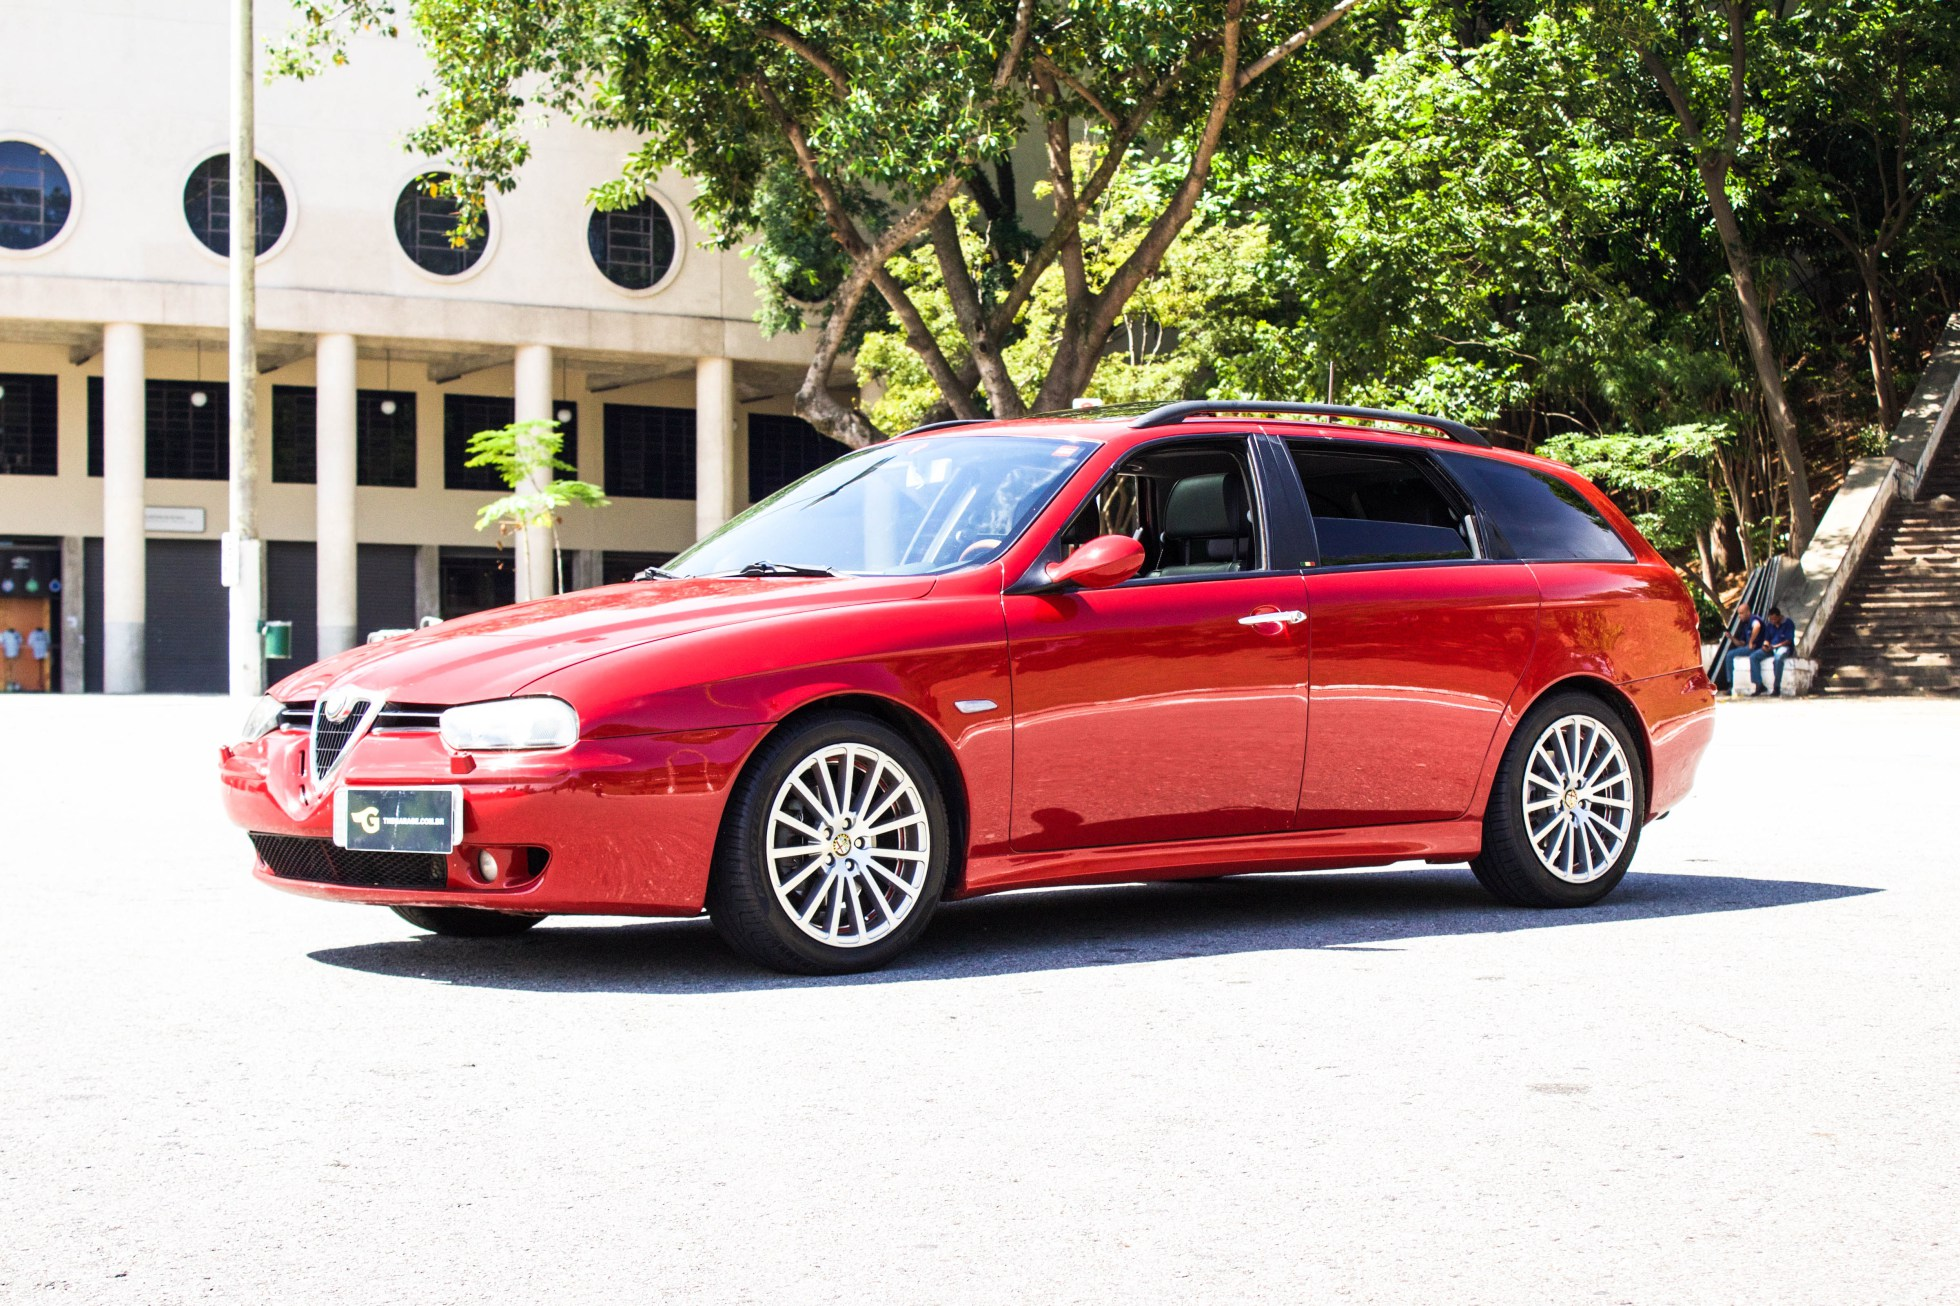 2001 Alfa Romeo 156 Sportwagon 2 0 Twin Spark The Garage